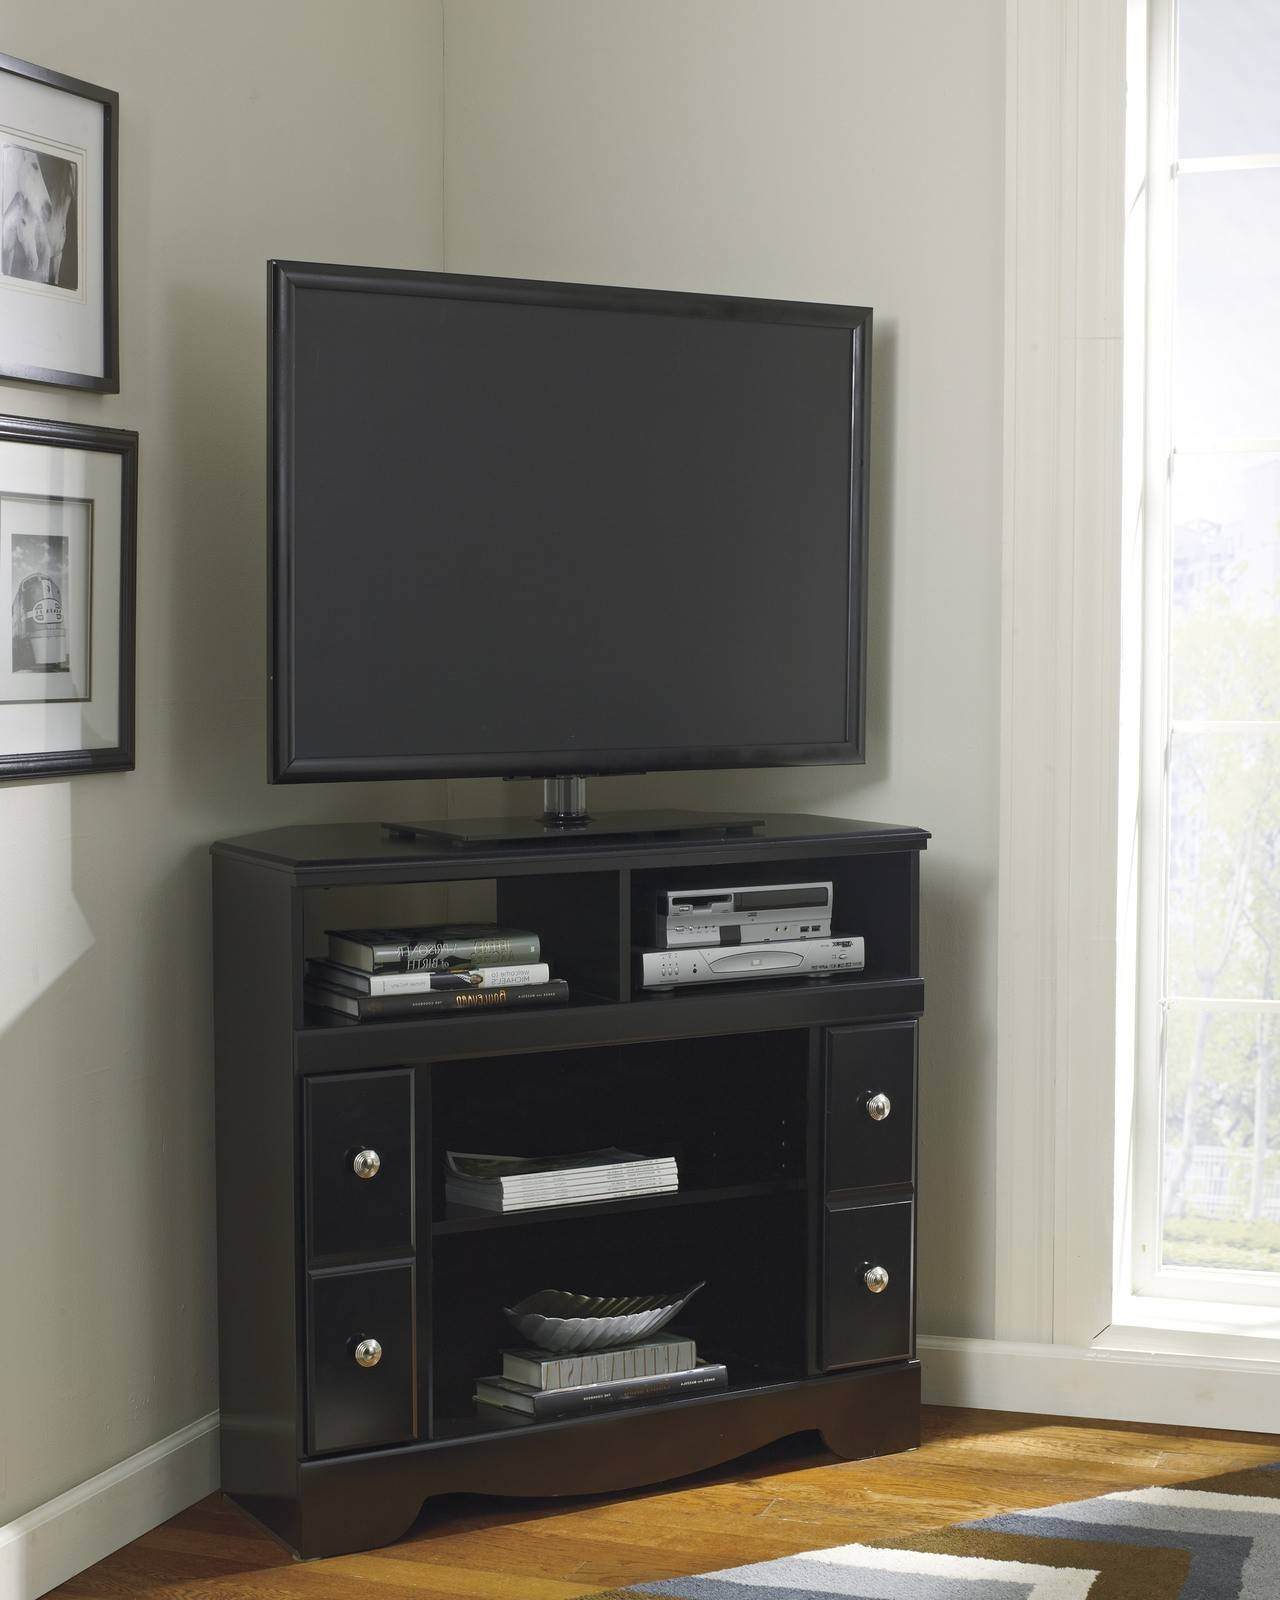 Cornet Tv Stand Cabinet In Black Color With Fireplace Insert with regard to Cornet Tv Stands (Image 3 of 15)